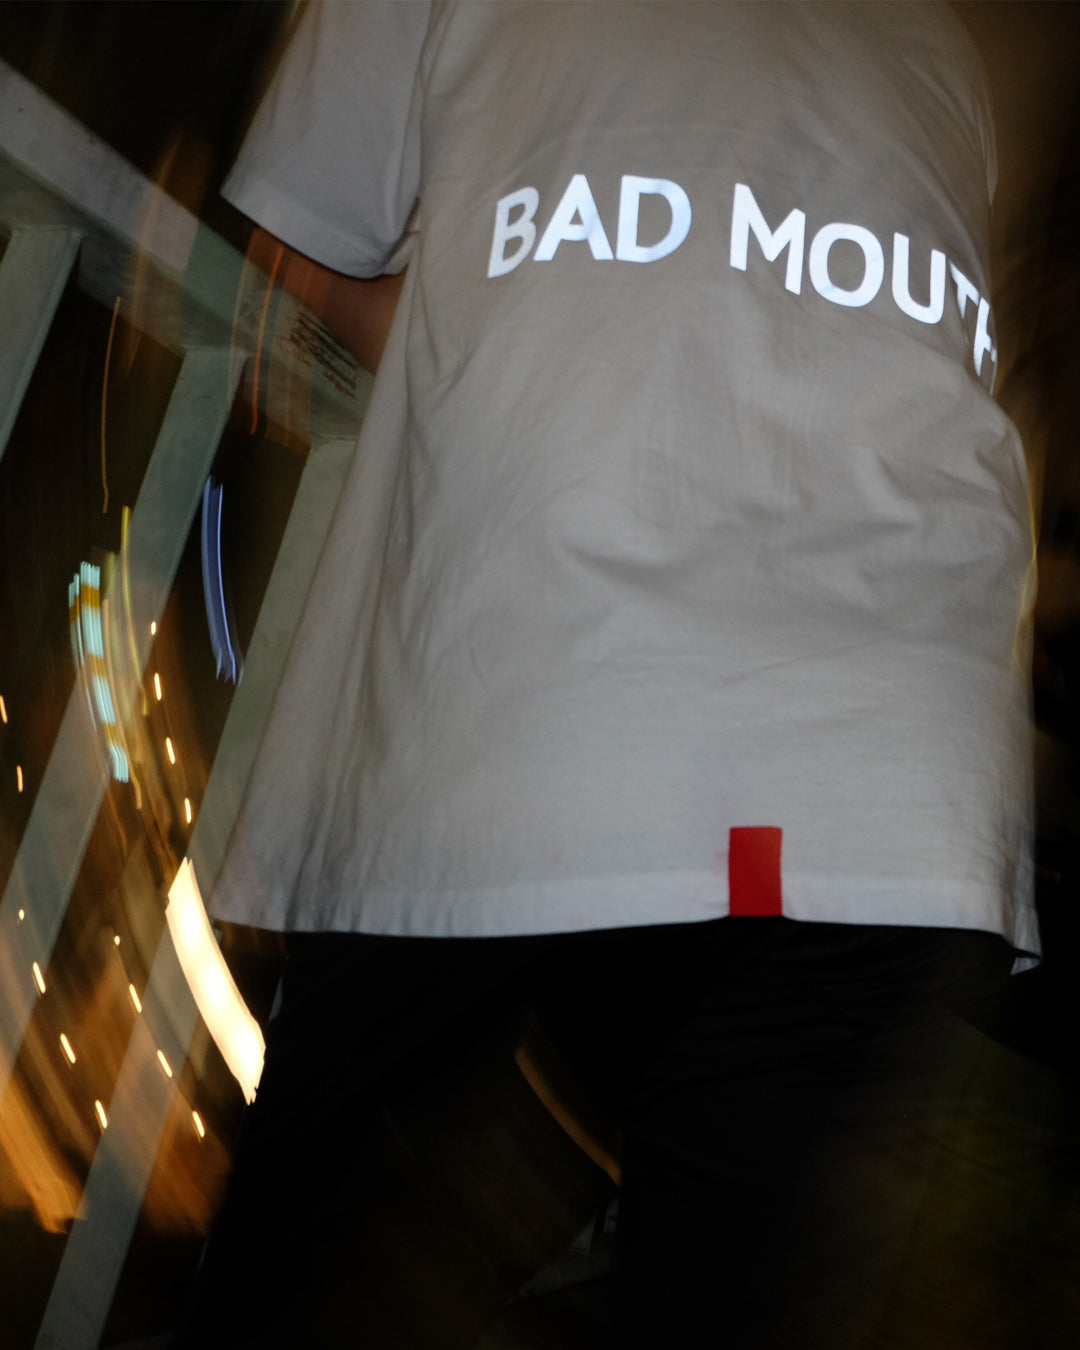 BAD MOUTH 9